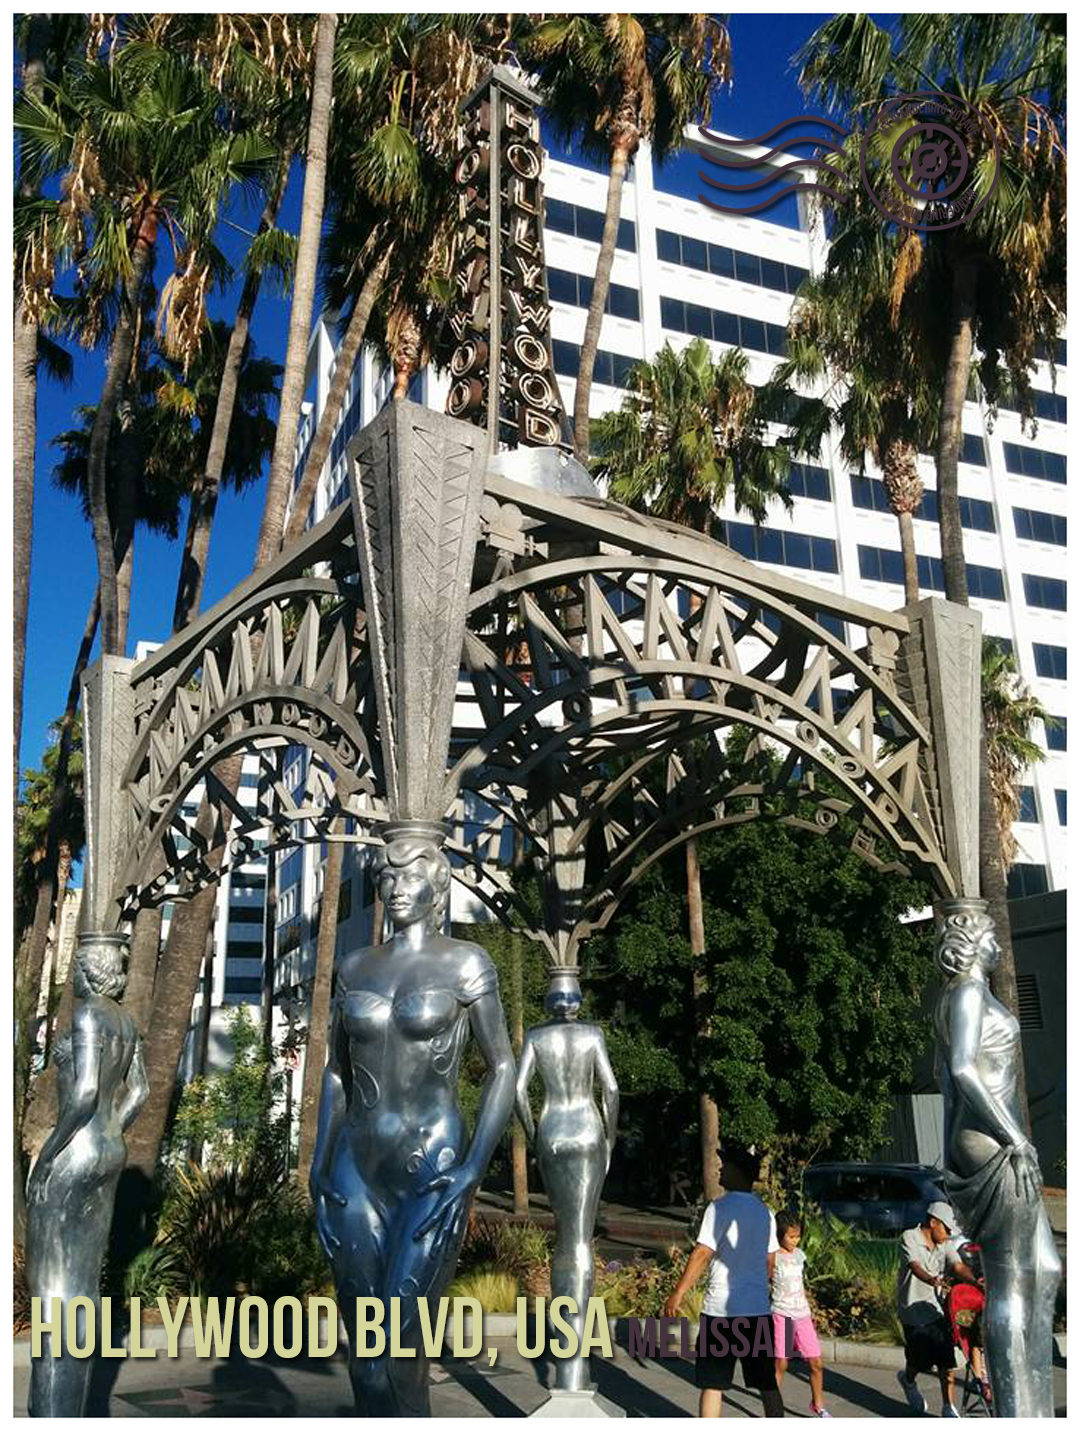 Hollywood Blvd, California, USA - Wandering postcard - postcards from around the world |My Wandering Voyage travel blog